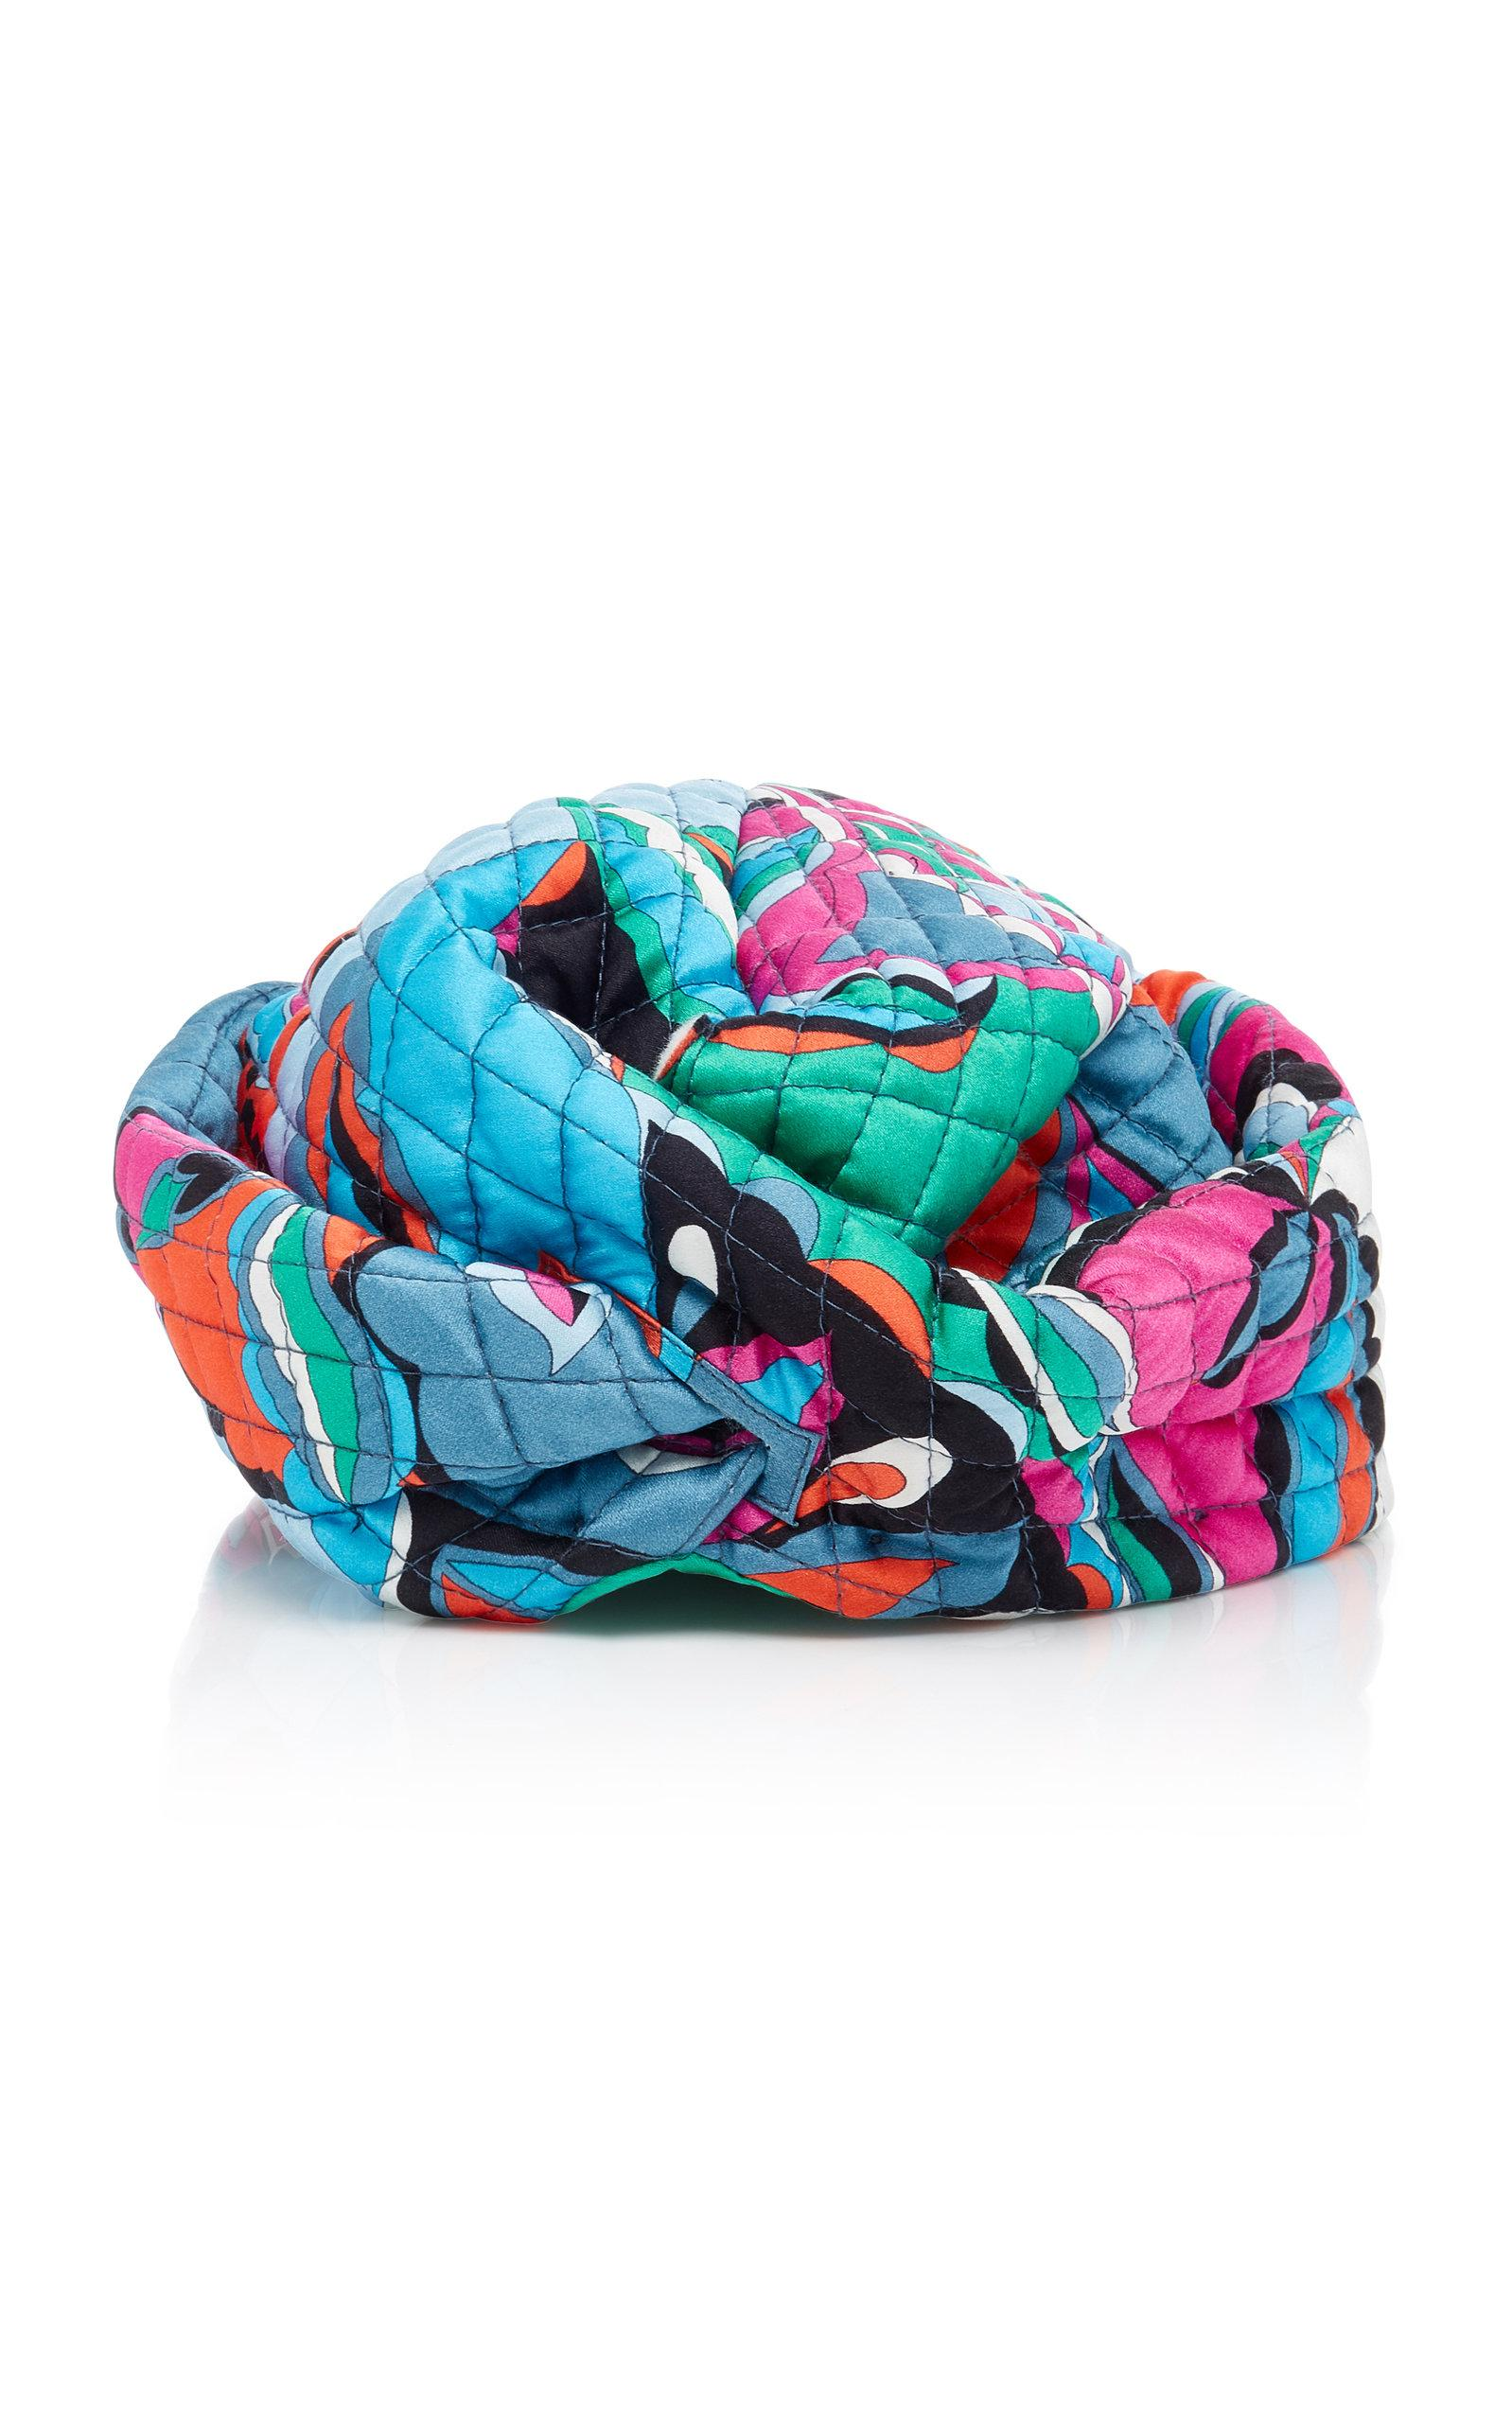 538bc00eb75f9 Emilio Pucci Quilted Silk Turban In Multi